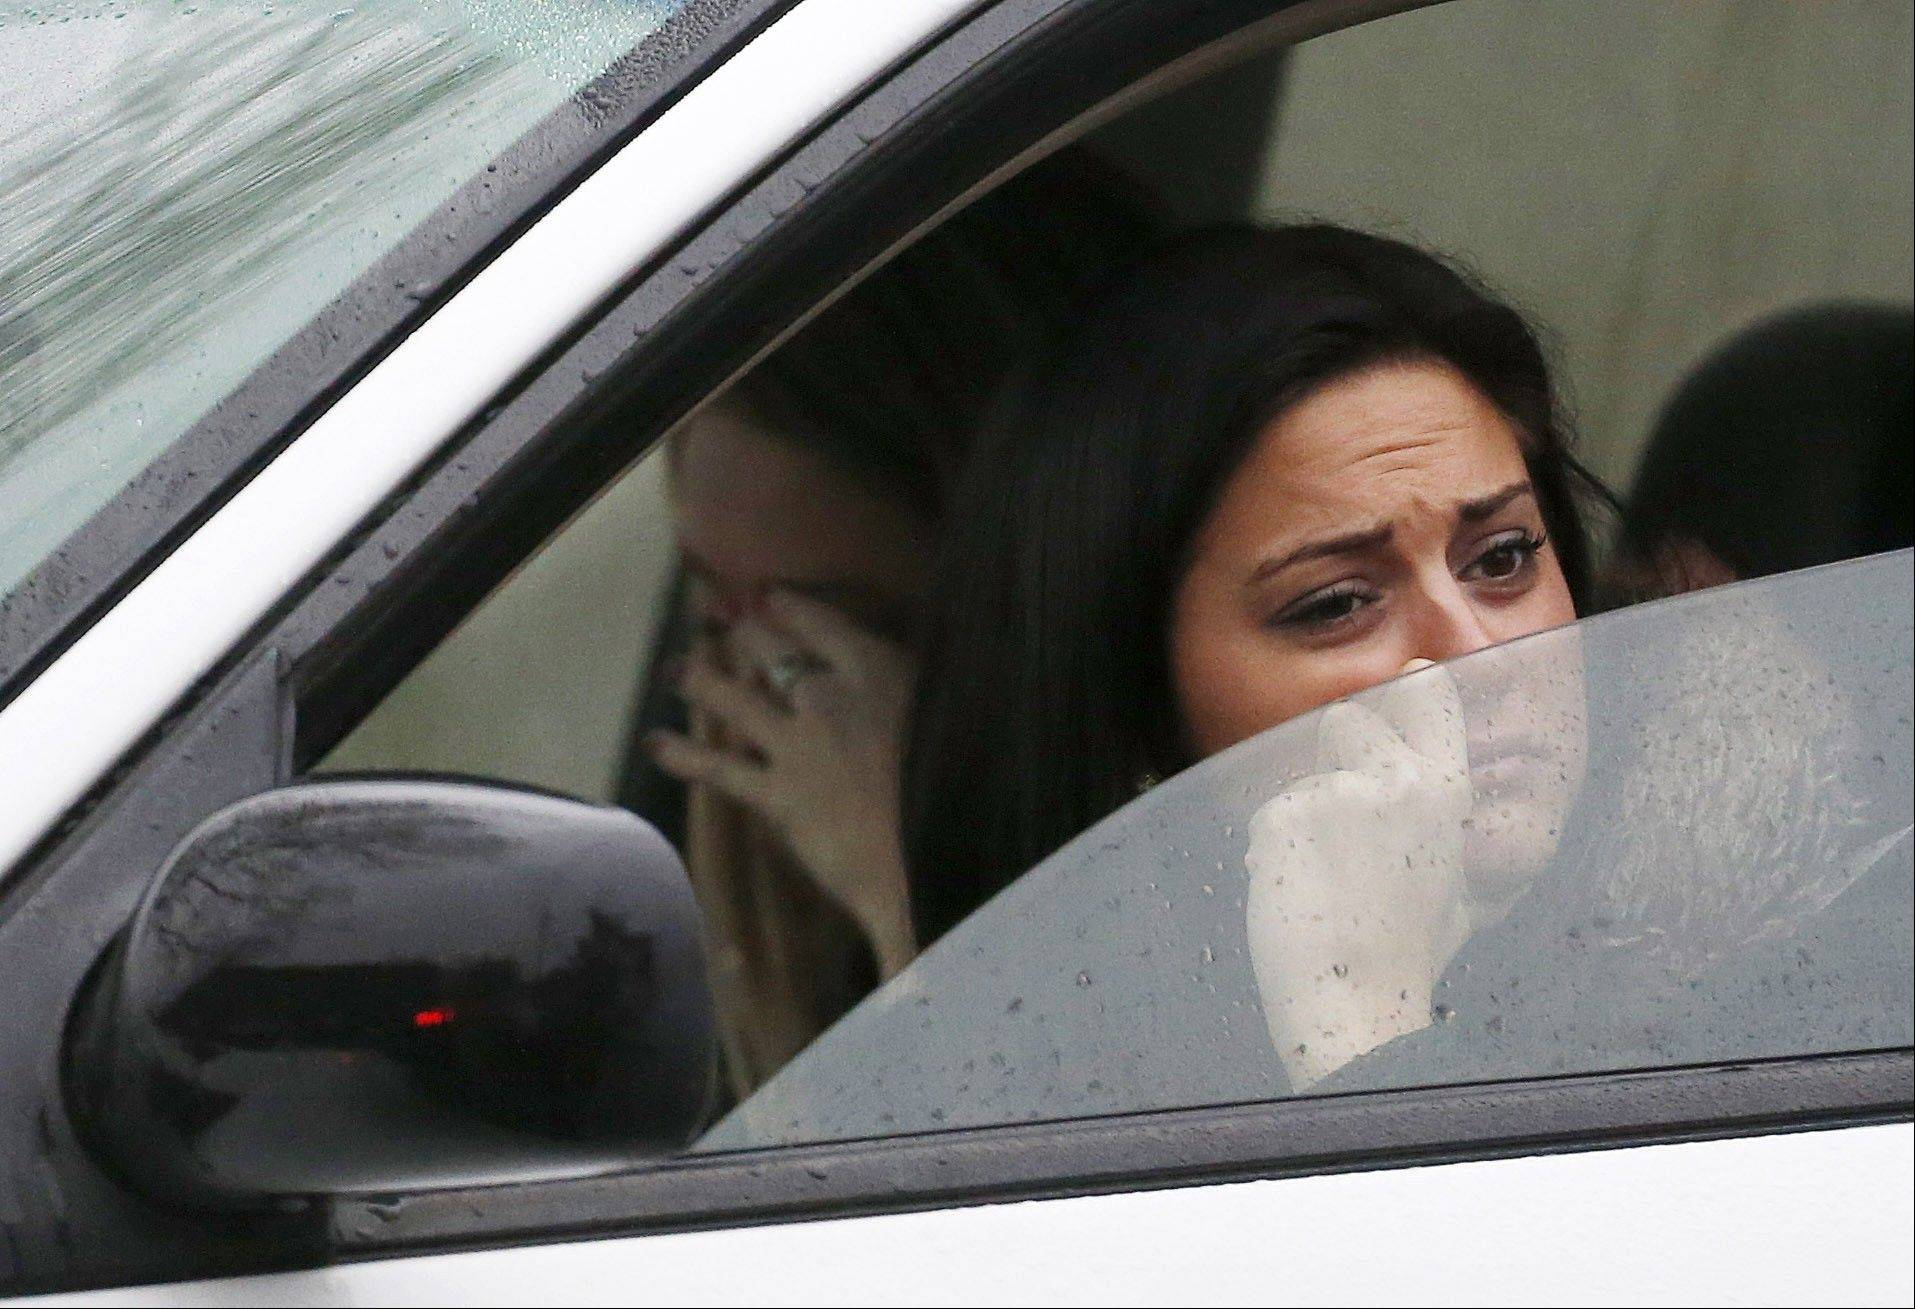 Women react while waiting in a vehicle to drive away from St. Rose of Lima Roman Catholic Church as officials respond to a bomb threat, Sunday, Dec. 16, 2012, in Newtown, Conn. Worshippers hurriedly left the church Sunday, not far from where a gunman opened fire Friday inside the Sandy Hook Elementary School in Newtown.